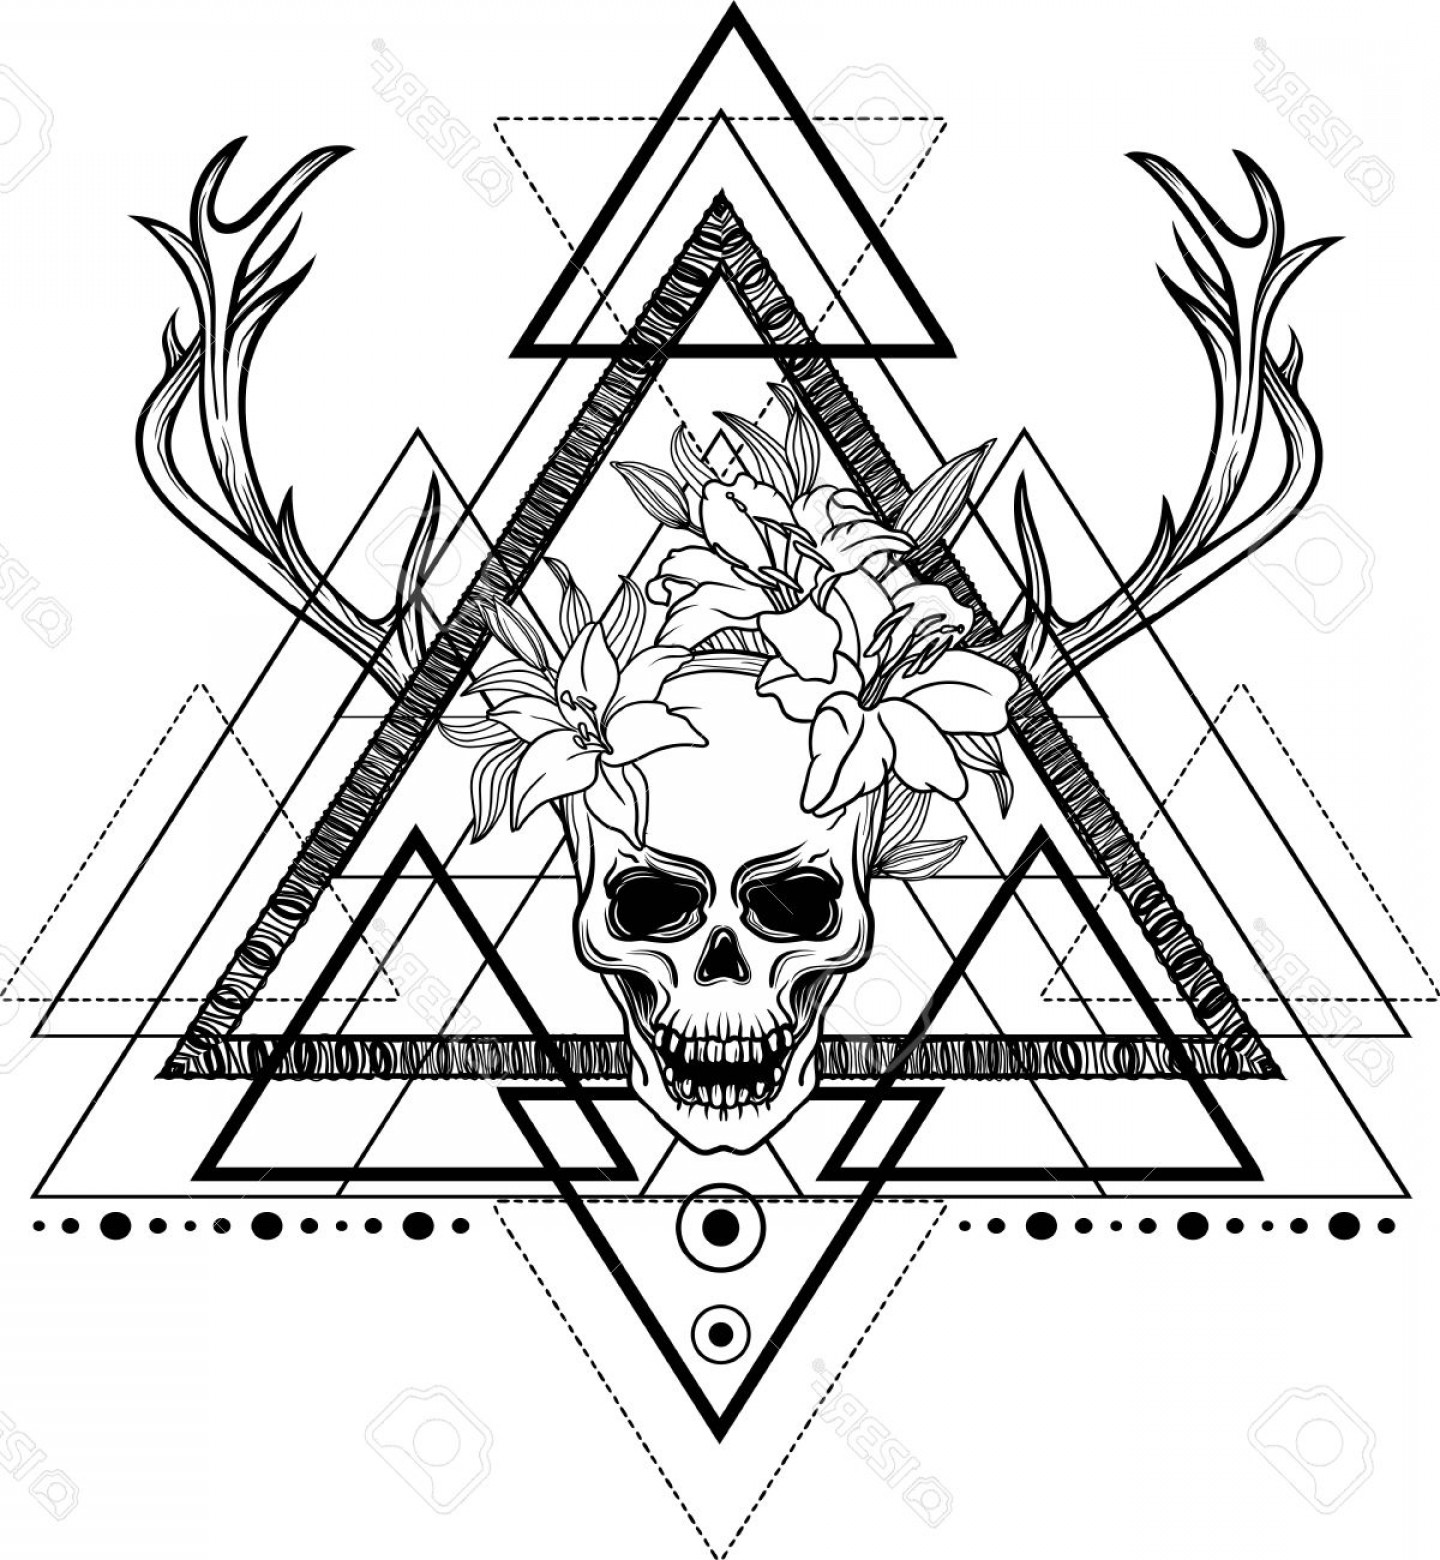 Dreamcatcher Tattoo Vector: Photostock Vector Blackwork Tattoo Flash Dreamcatcher With Human Skull Lily Flover And Deer Antlers Tattoo Mystic Symb